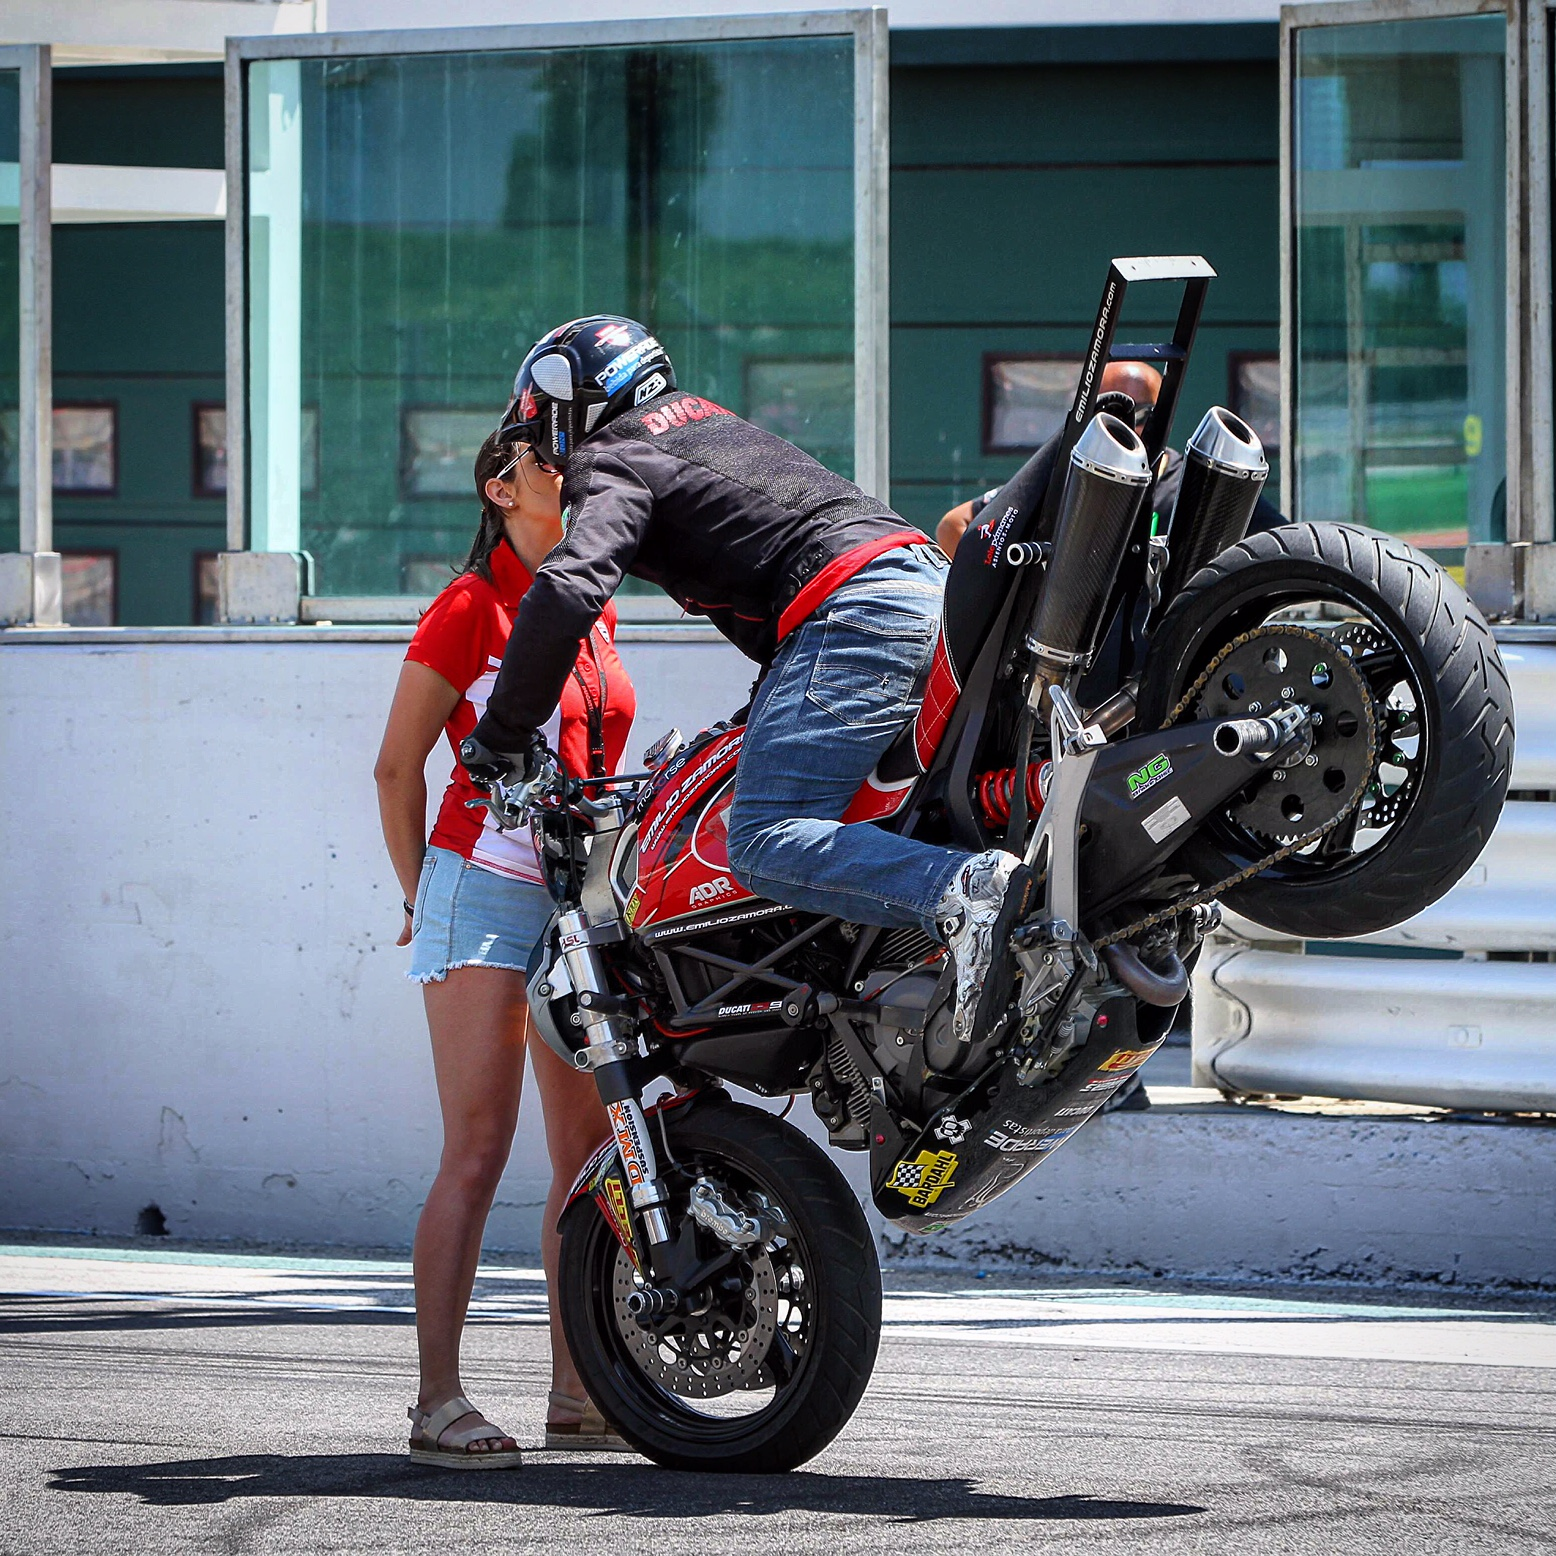 world_ducati_week_2016_wdw_stunt_team_moto_show_motor_exhibicion_espectaculo_ducatistas_doc_misano_italy_italia_rimini_wheelie_stoppie_burnout_panigale_diavel_monster_freestyle_1_kiss_love